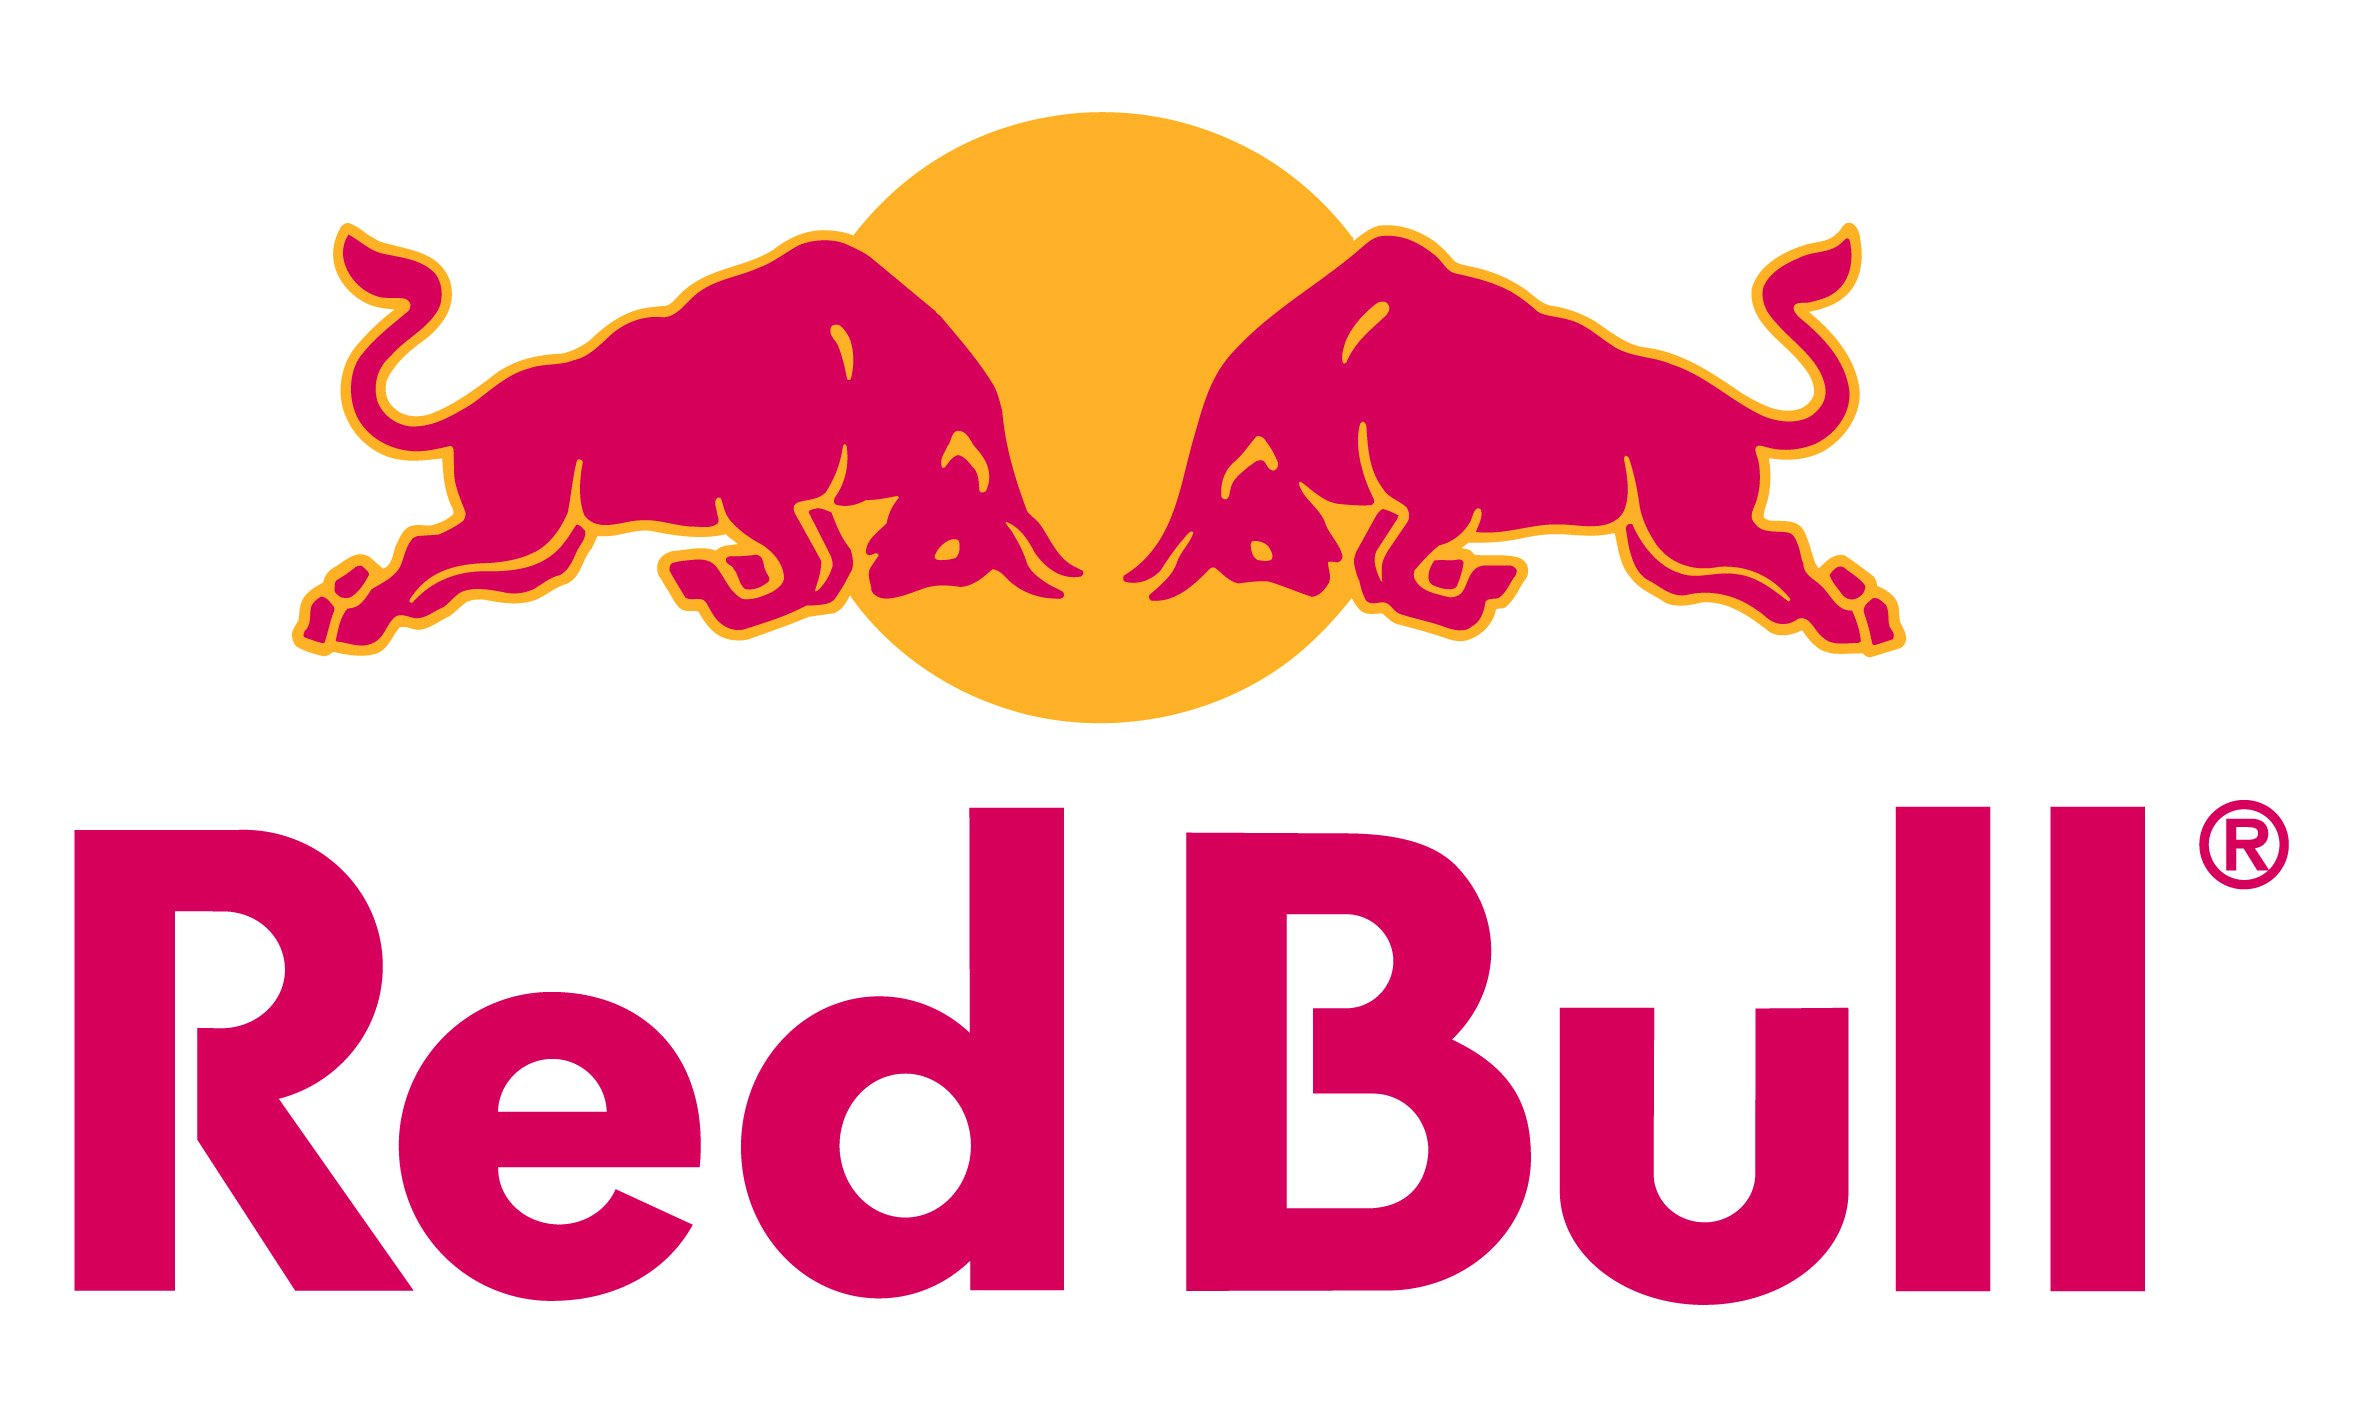 redbull logo png - Free Large Images - Red Bull PNG